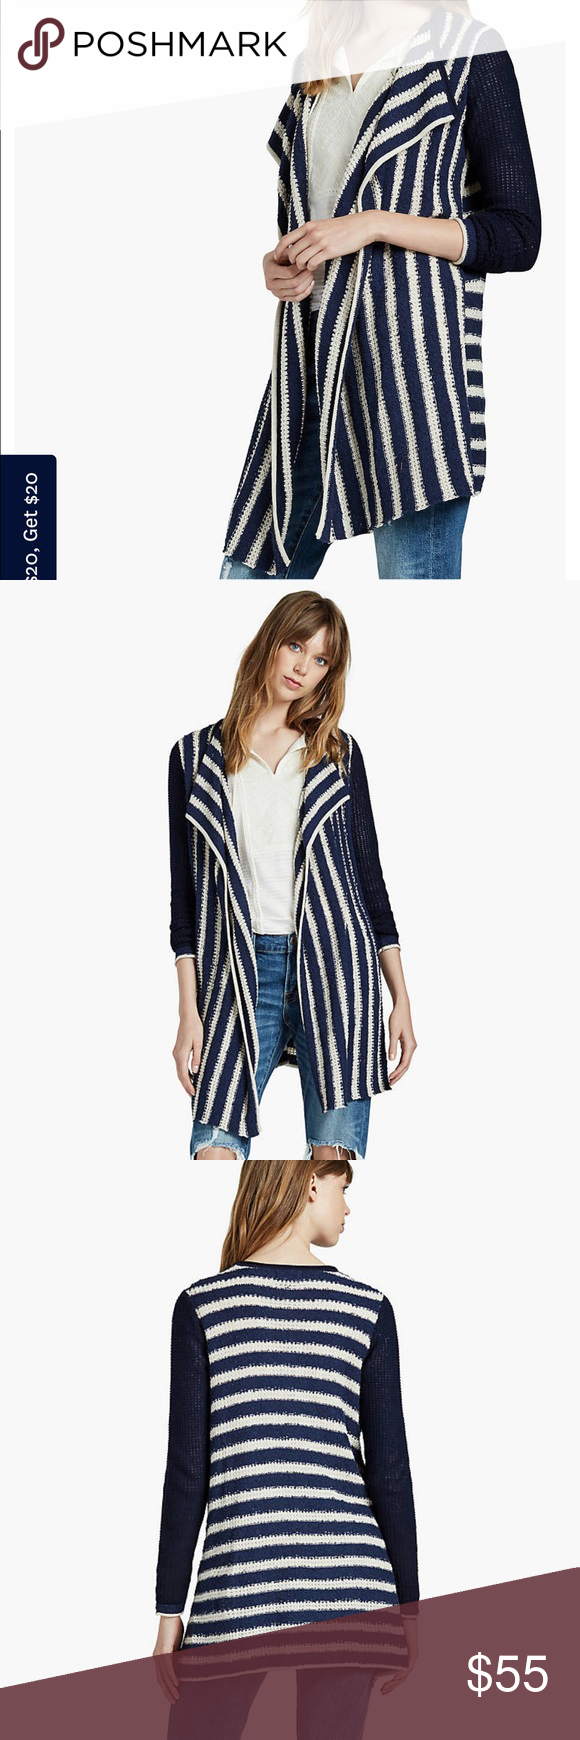 Lucky brand striped waterfall cardigan